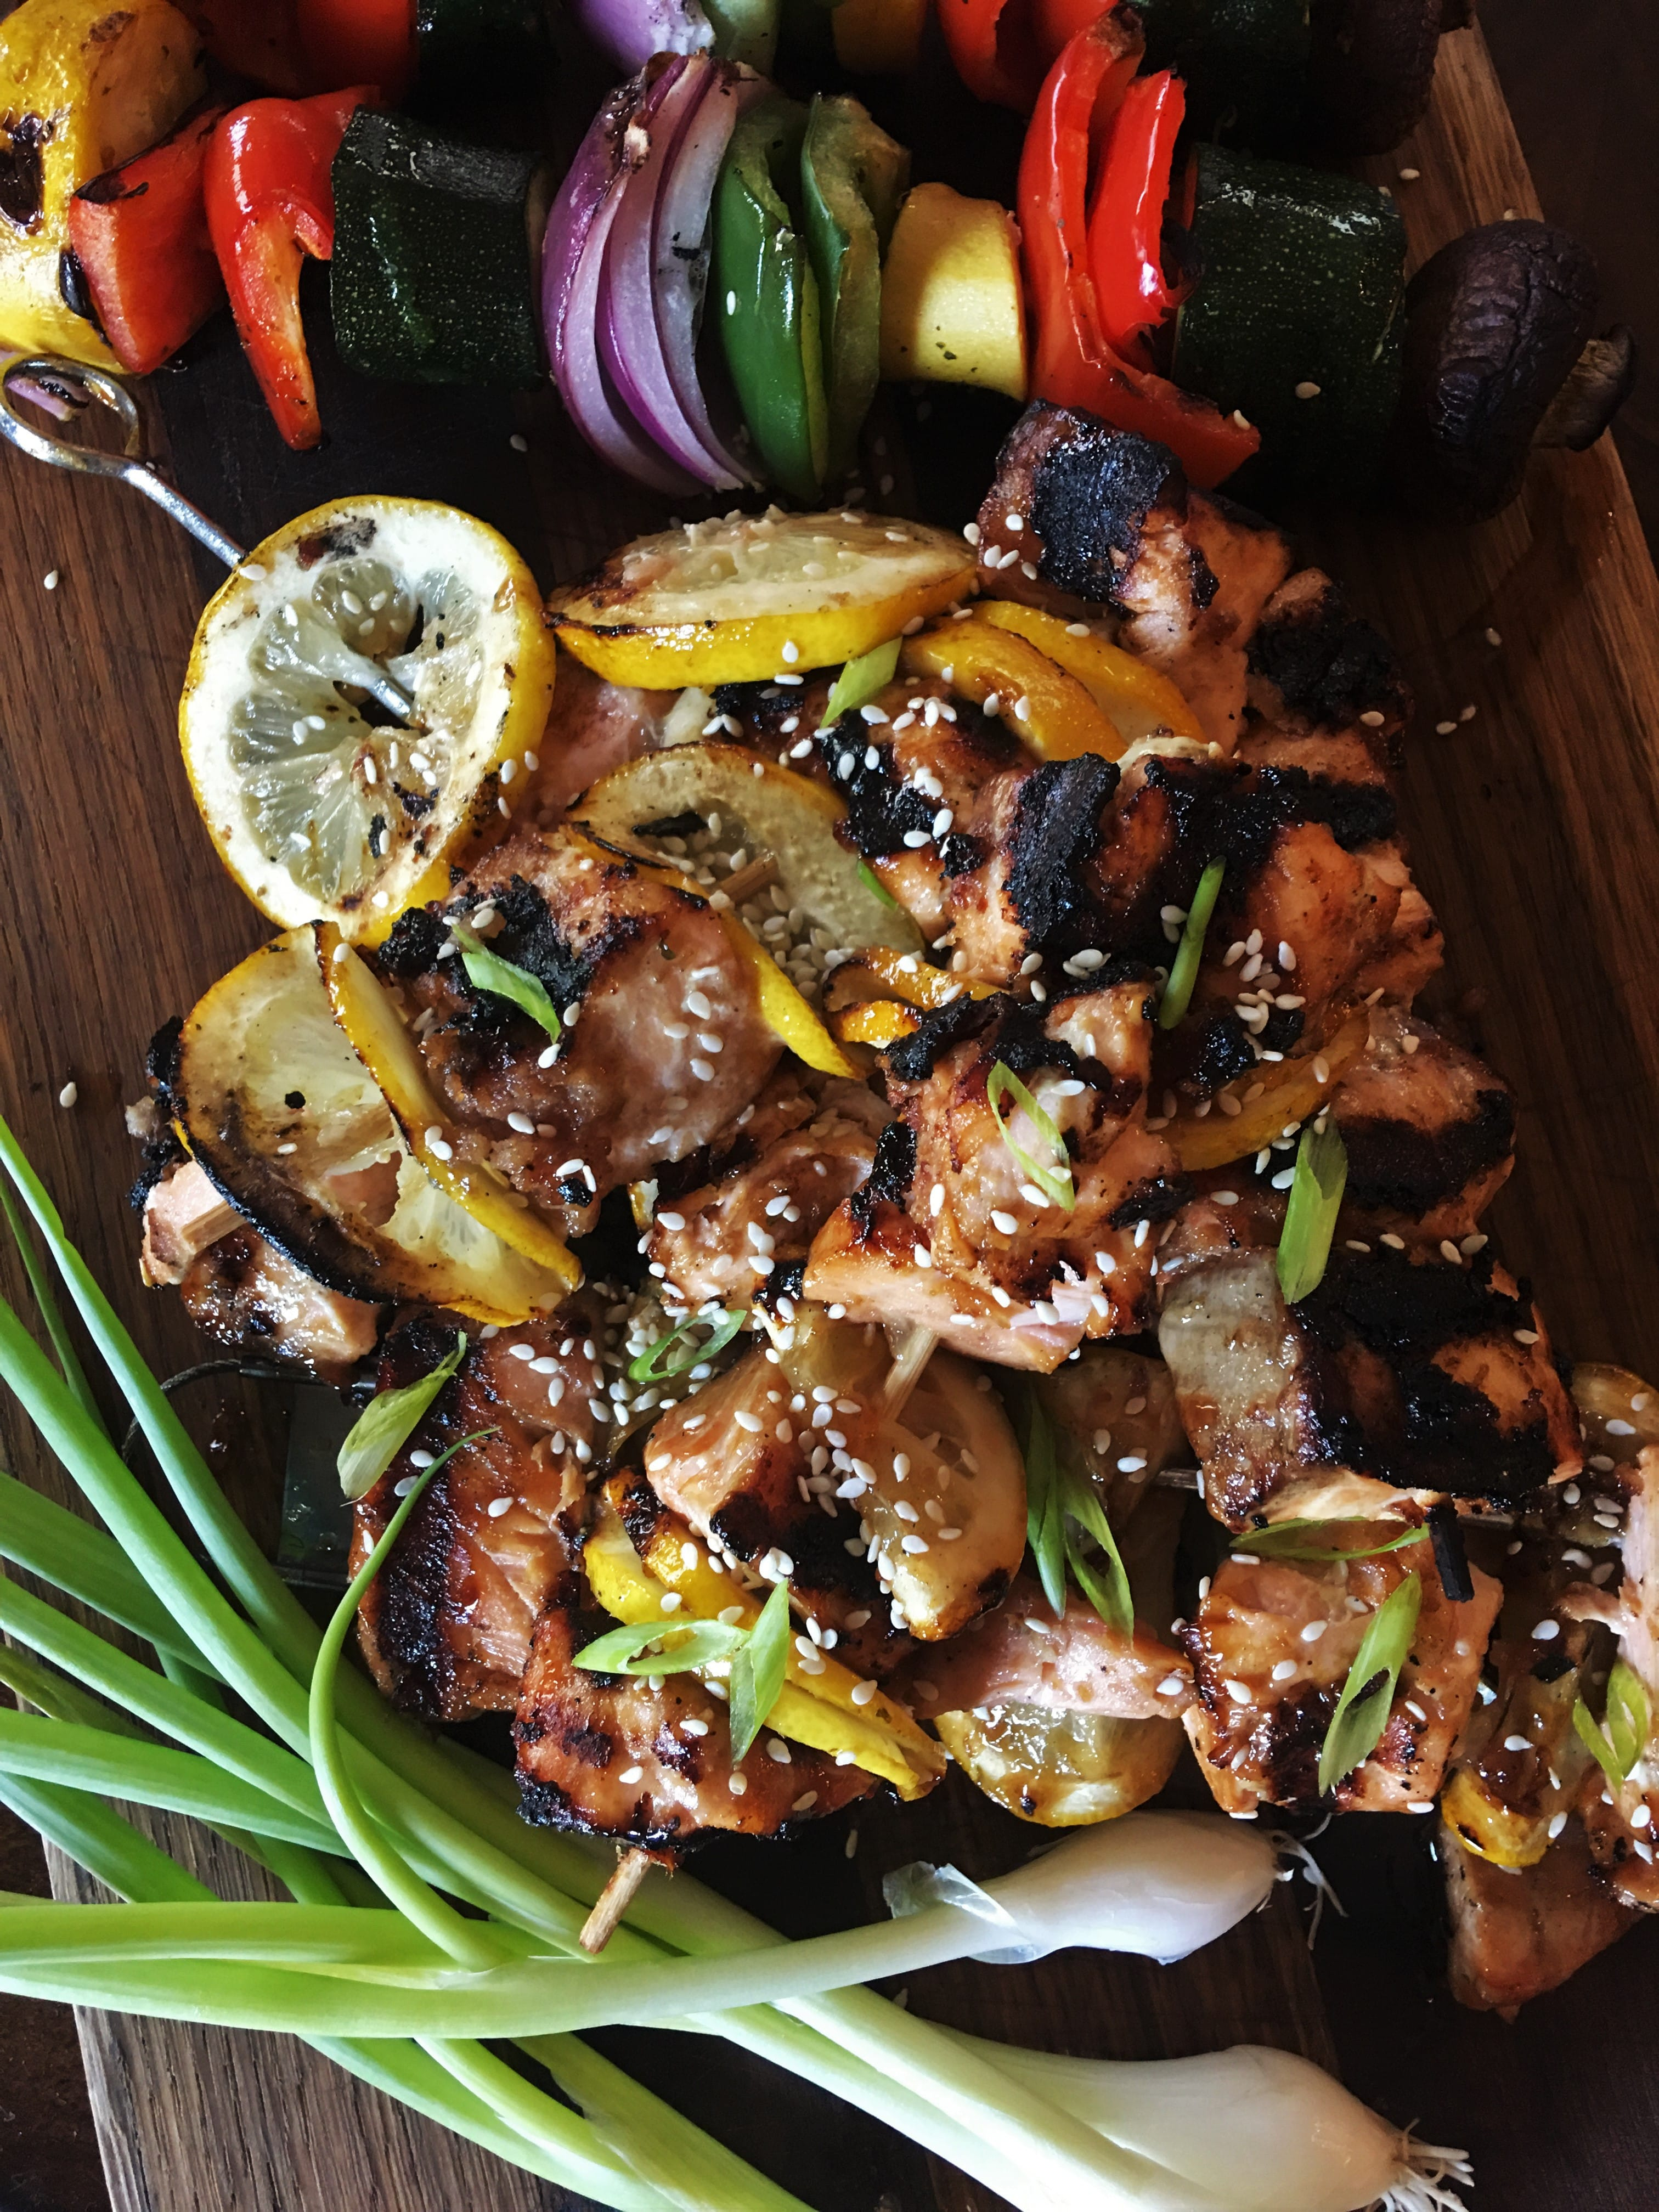 Sticky Bacon and Salmon Kebabs arranged in a pile on a wood cutting board next to fresh green onions and grilled vegetables.